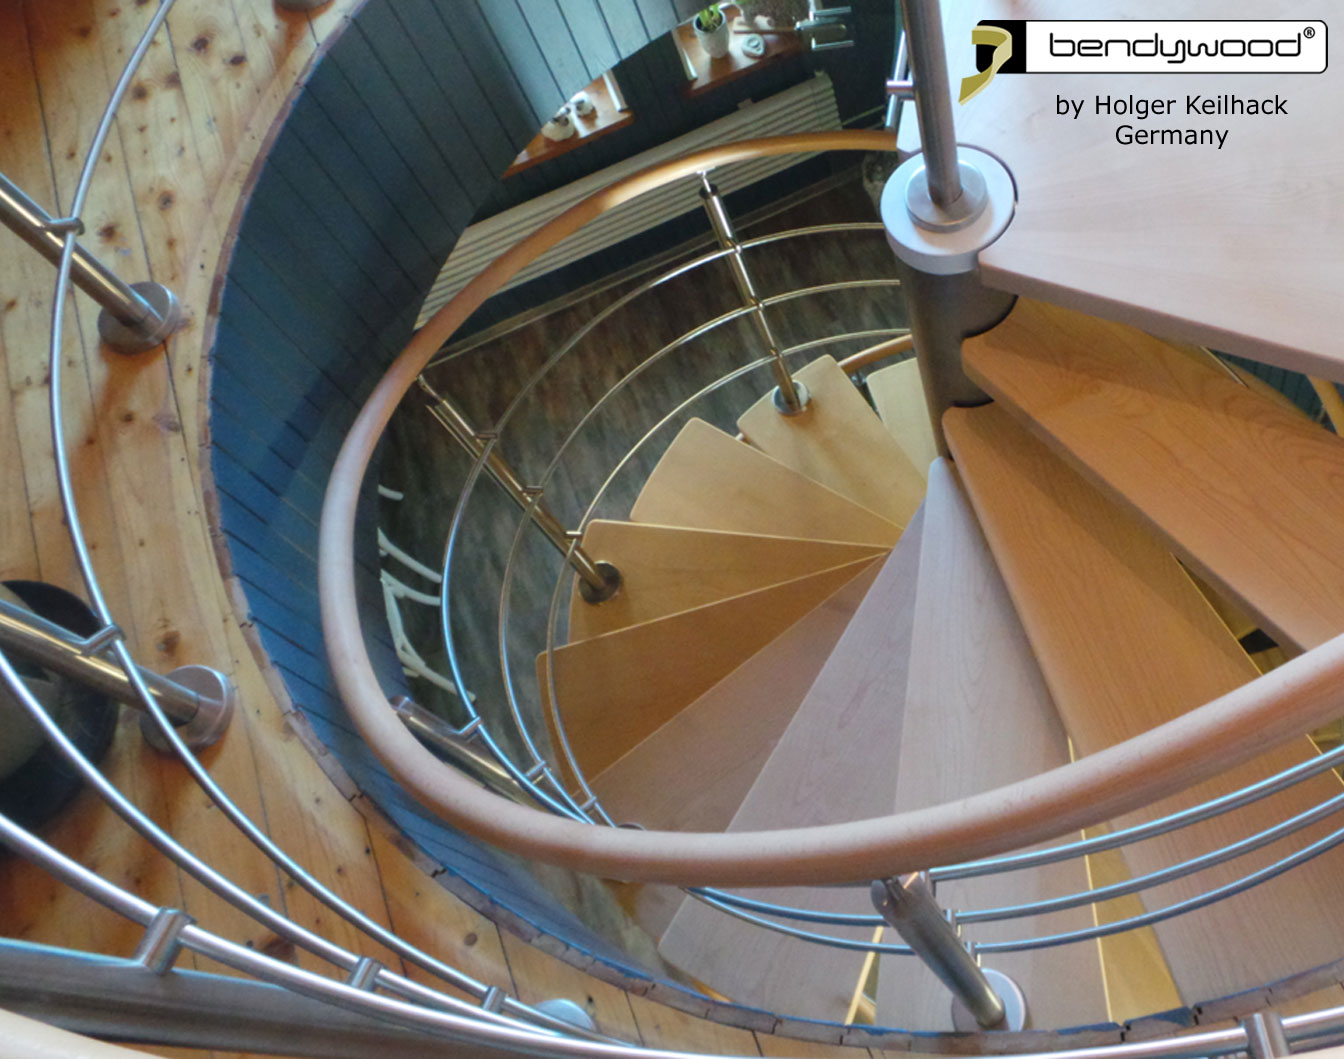 Bending wood Bendywood® - stairs with bending handrails